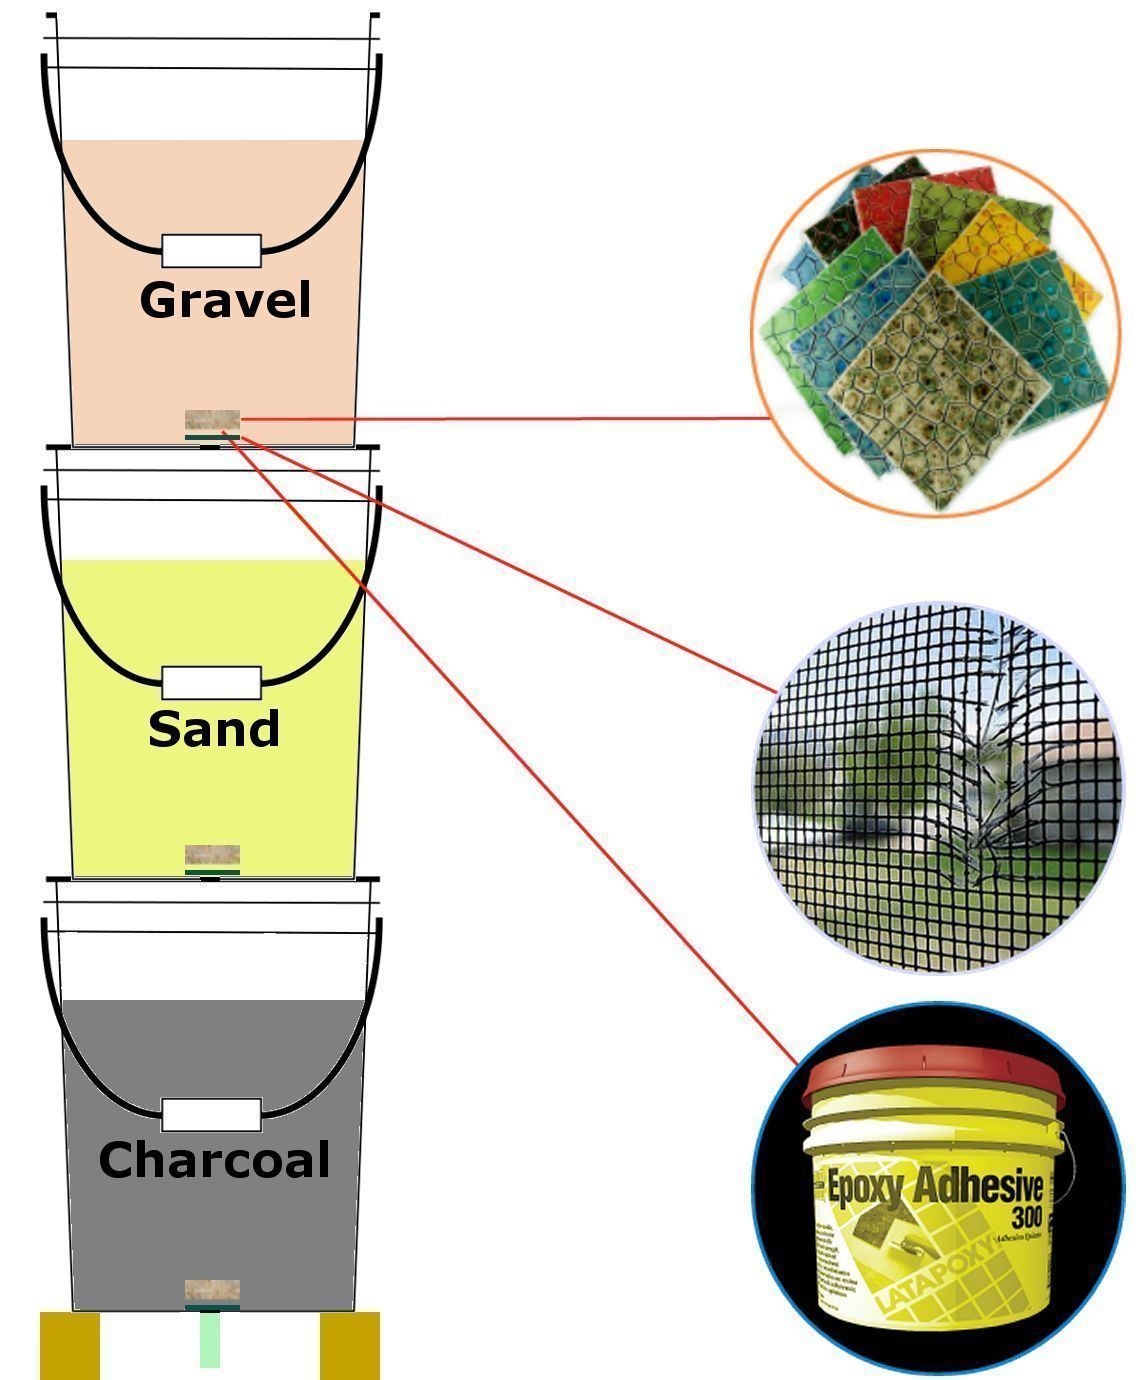 Superieur Bucket Diagram Water Filter Charcoal Gravel Sand